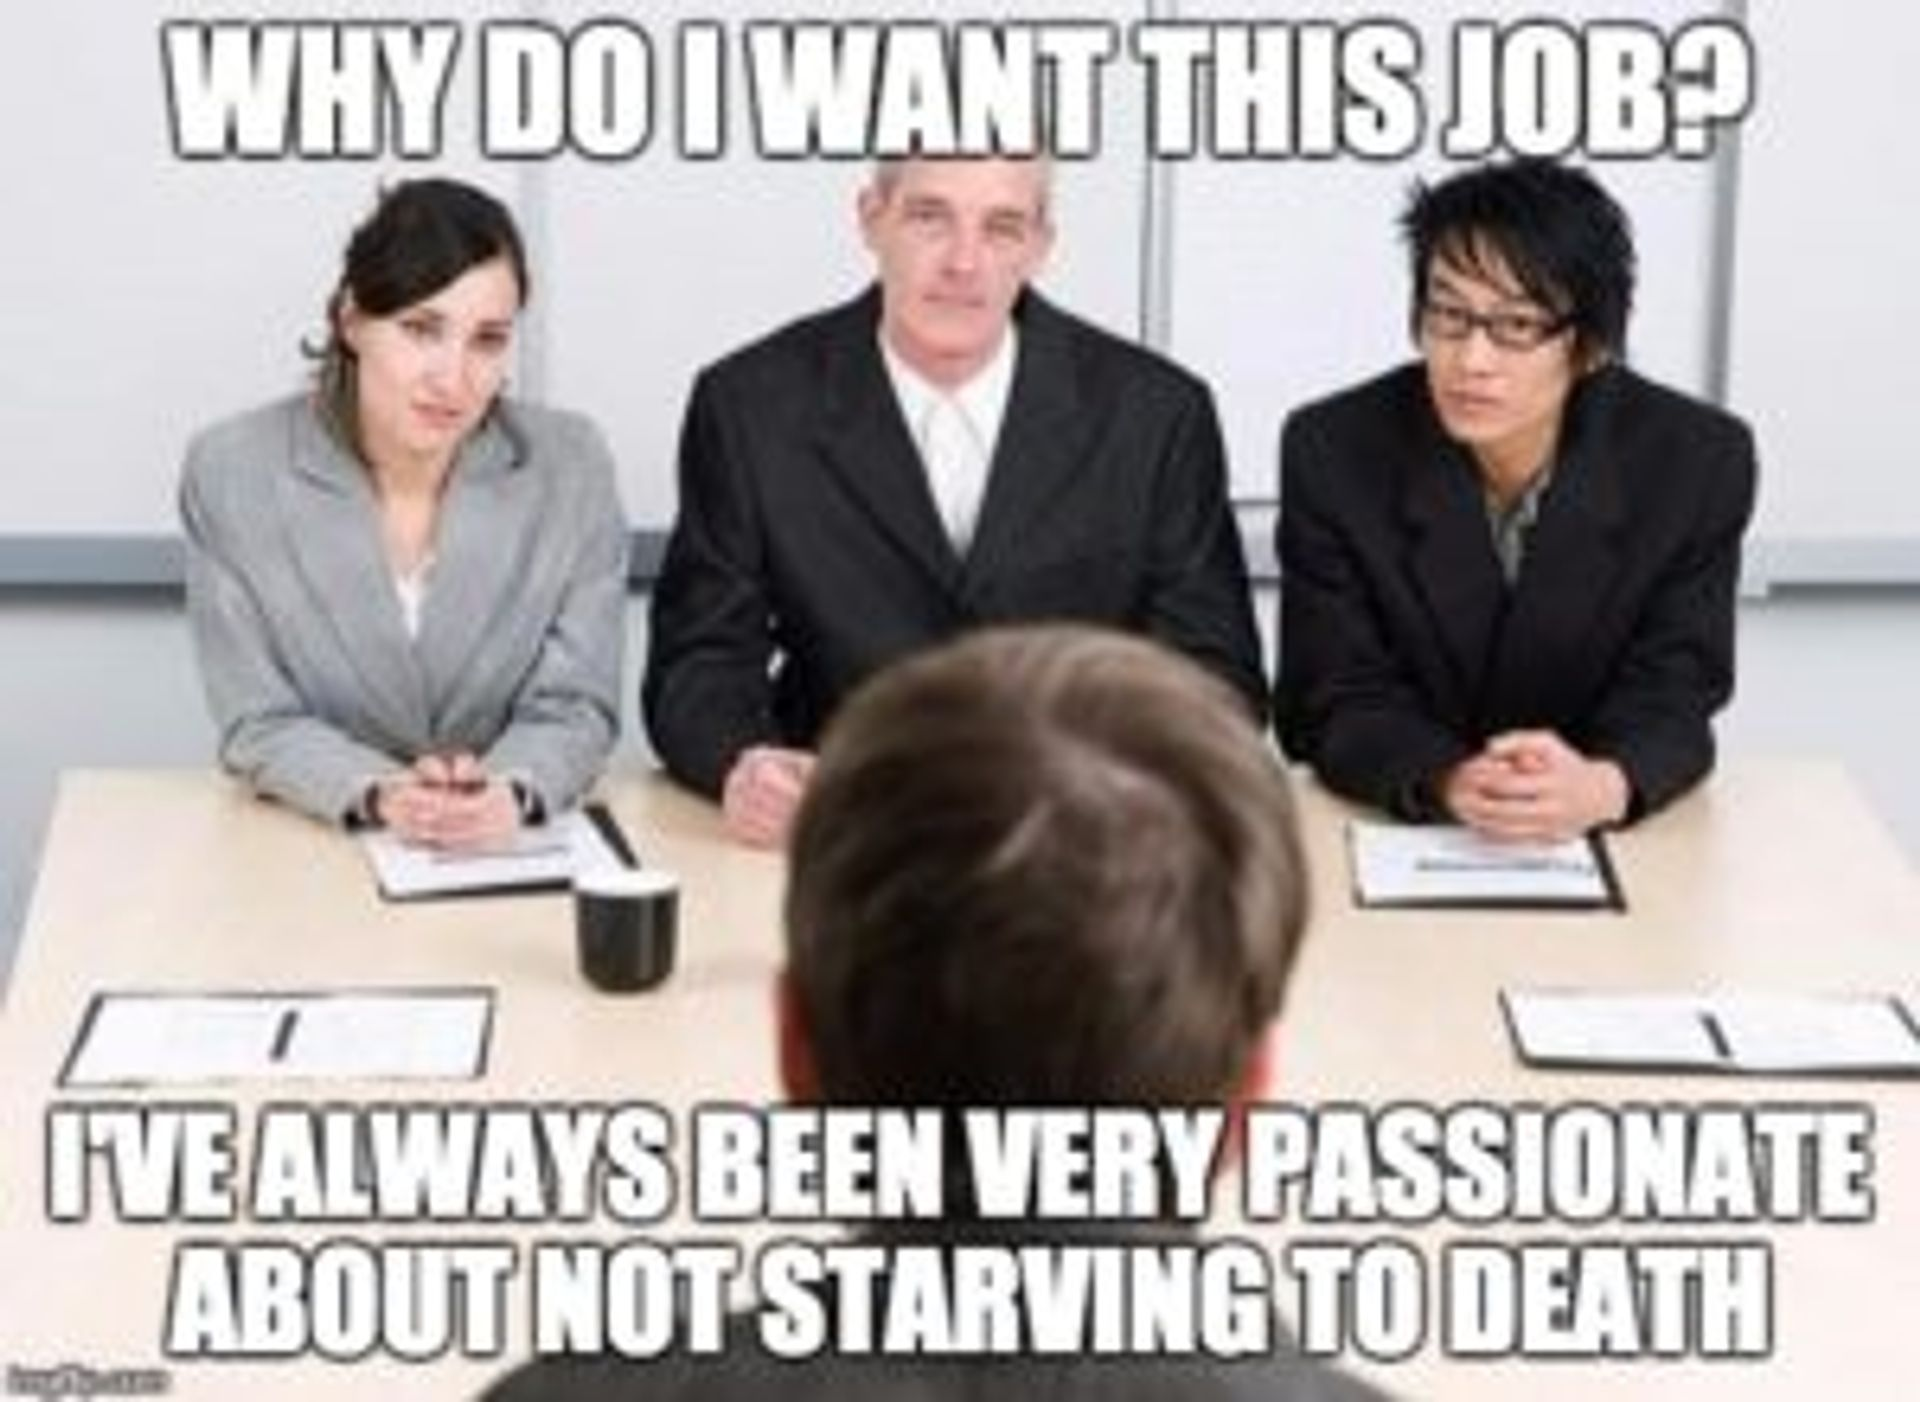 People in an interview, caption reads 'Why do I want this job? I've always been passionate about not starving to death'.